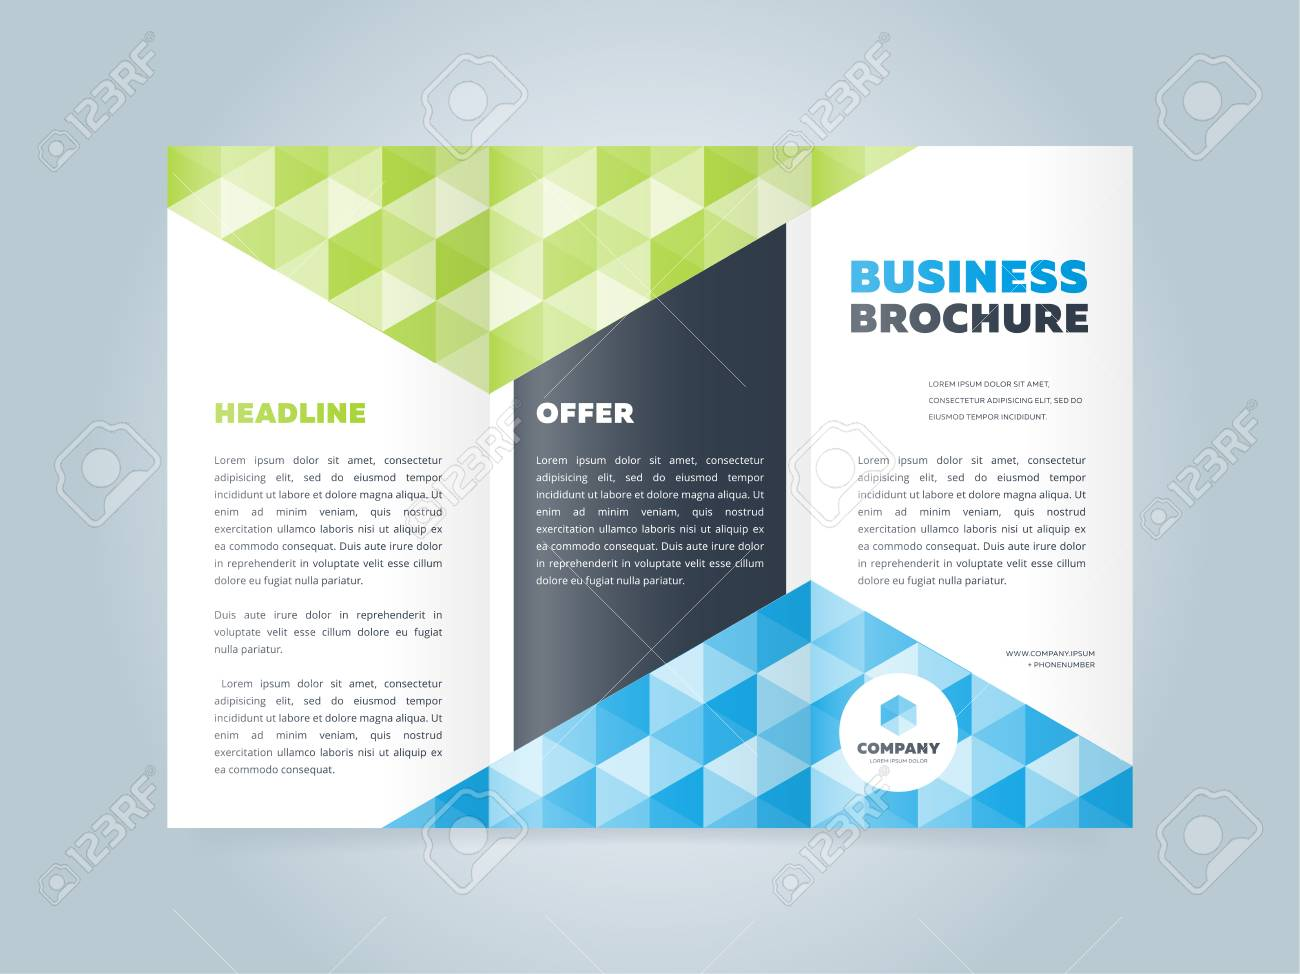 Trifold Business Brochure Design Template Vector Flyer Leaflet Royalty Free Cliparts Vectors And Stock Illustration Image 55802049